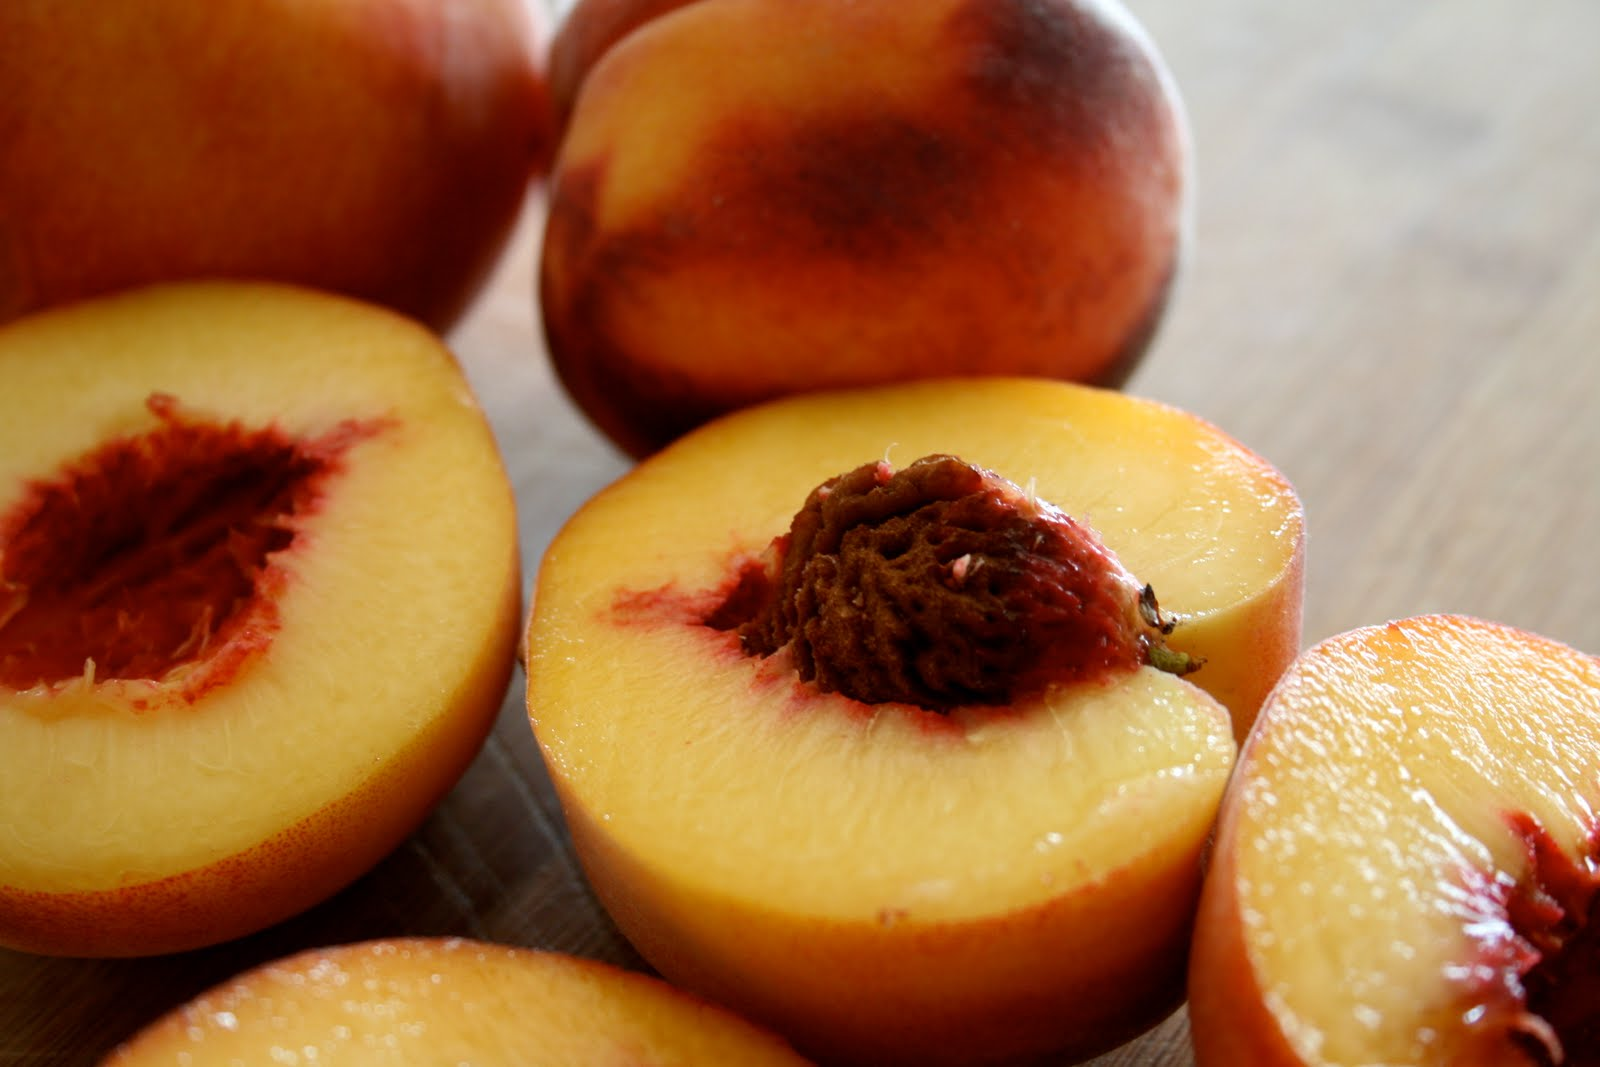 ... Bite....Eating for a healthier life: Peach and Cinnamon Fruit Leather